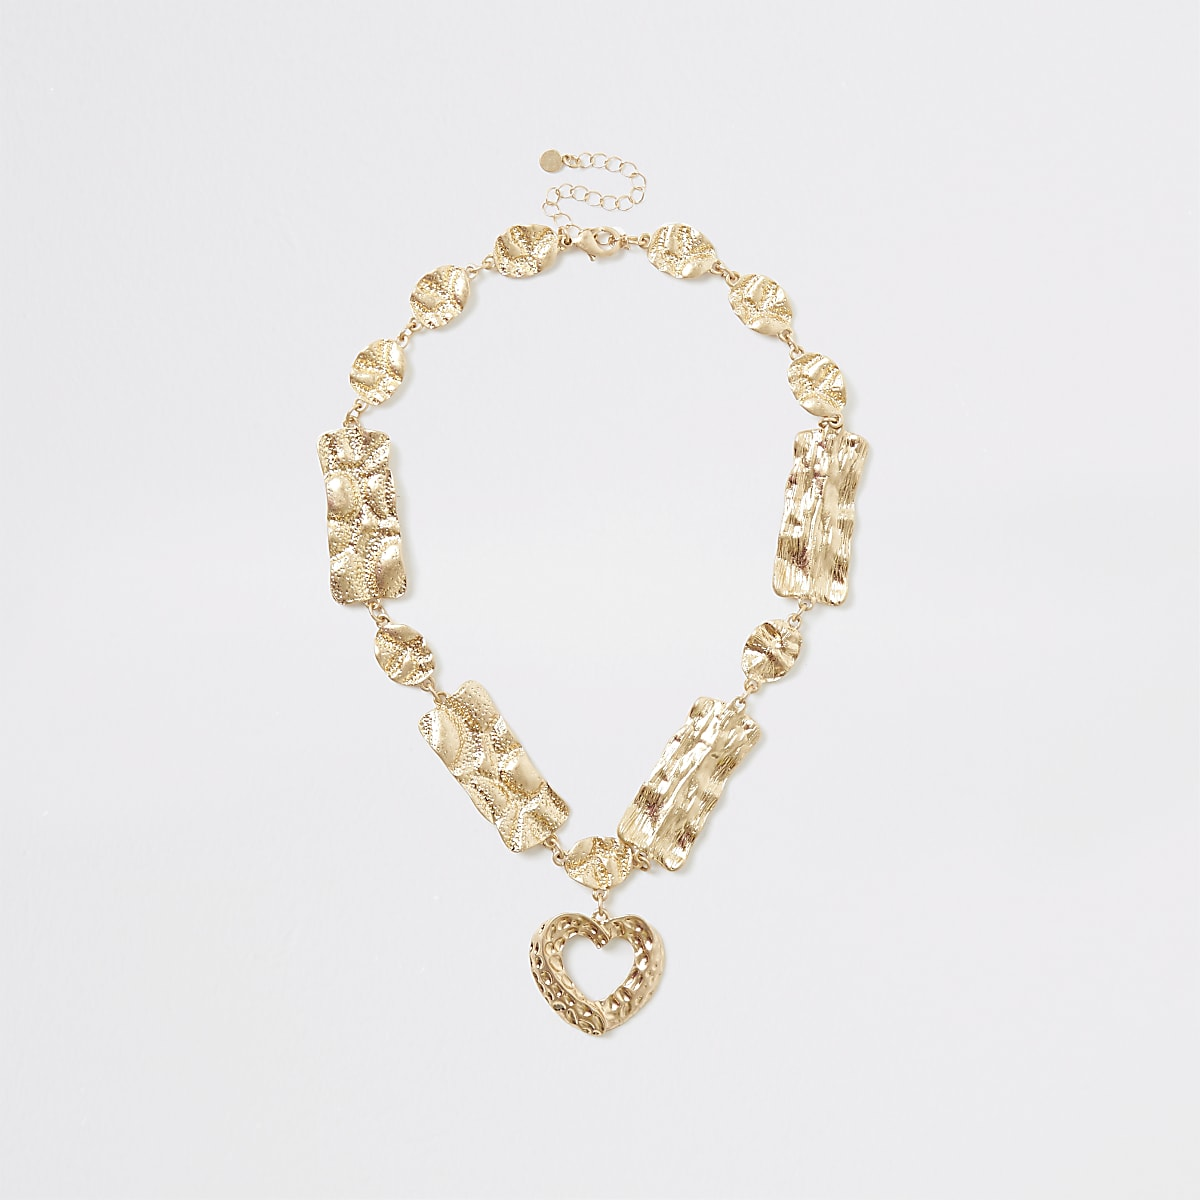 Gold color heart pendant necklace